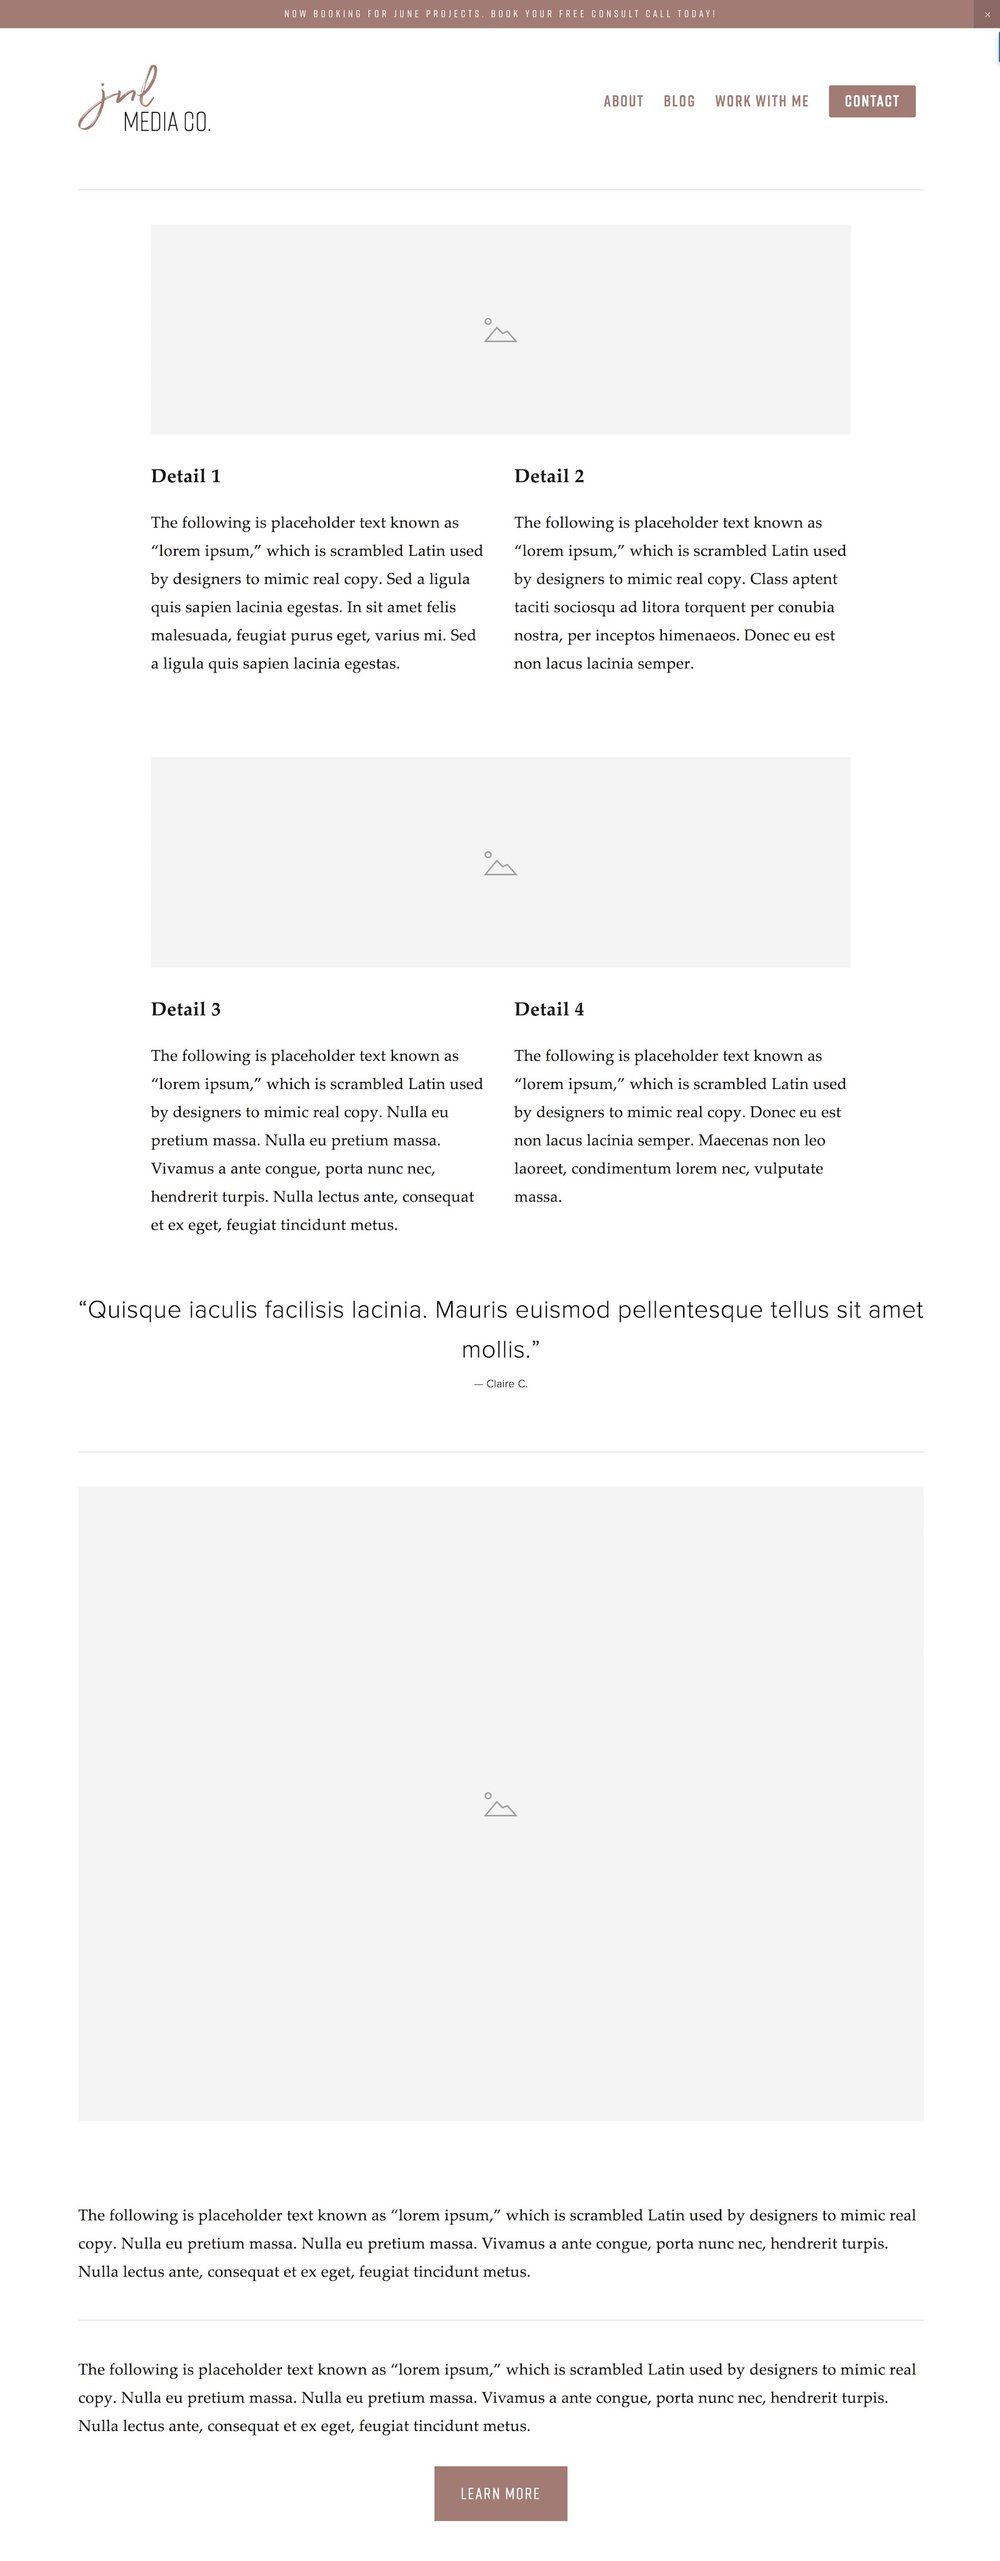 Wireframe created on Squarespace